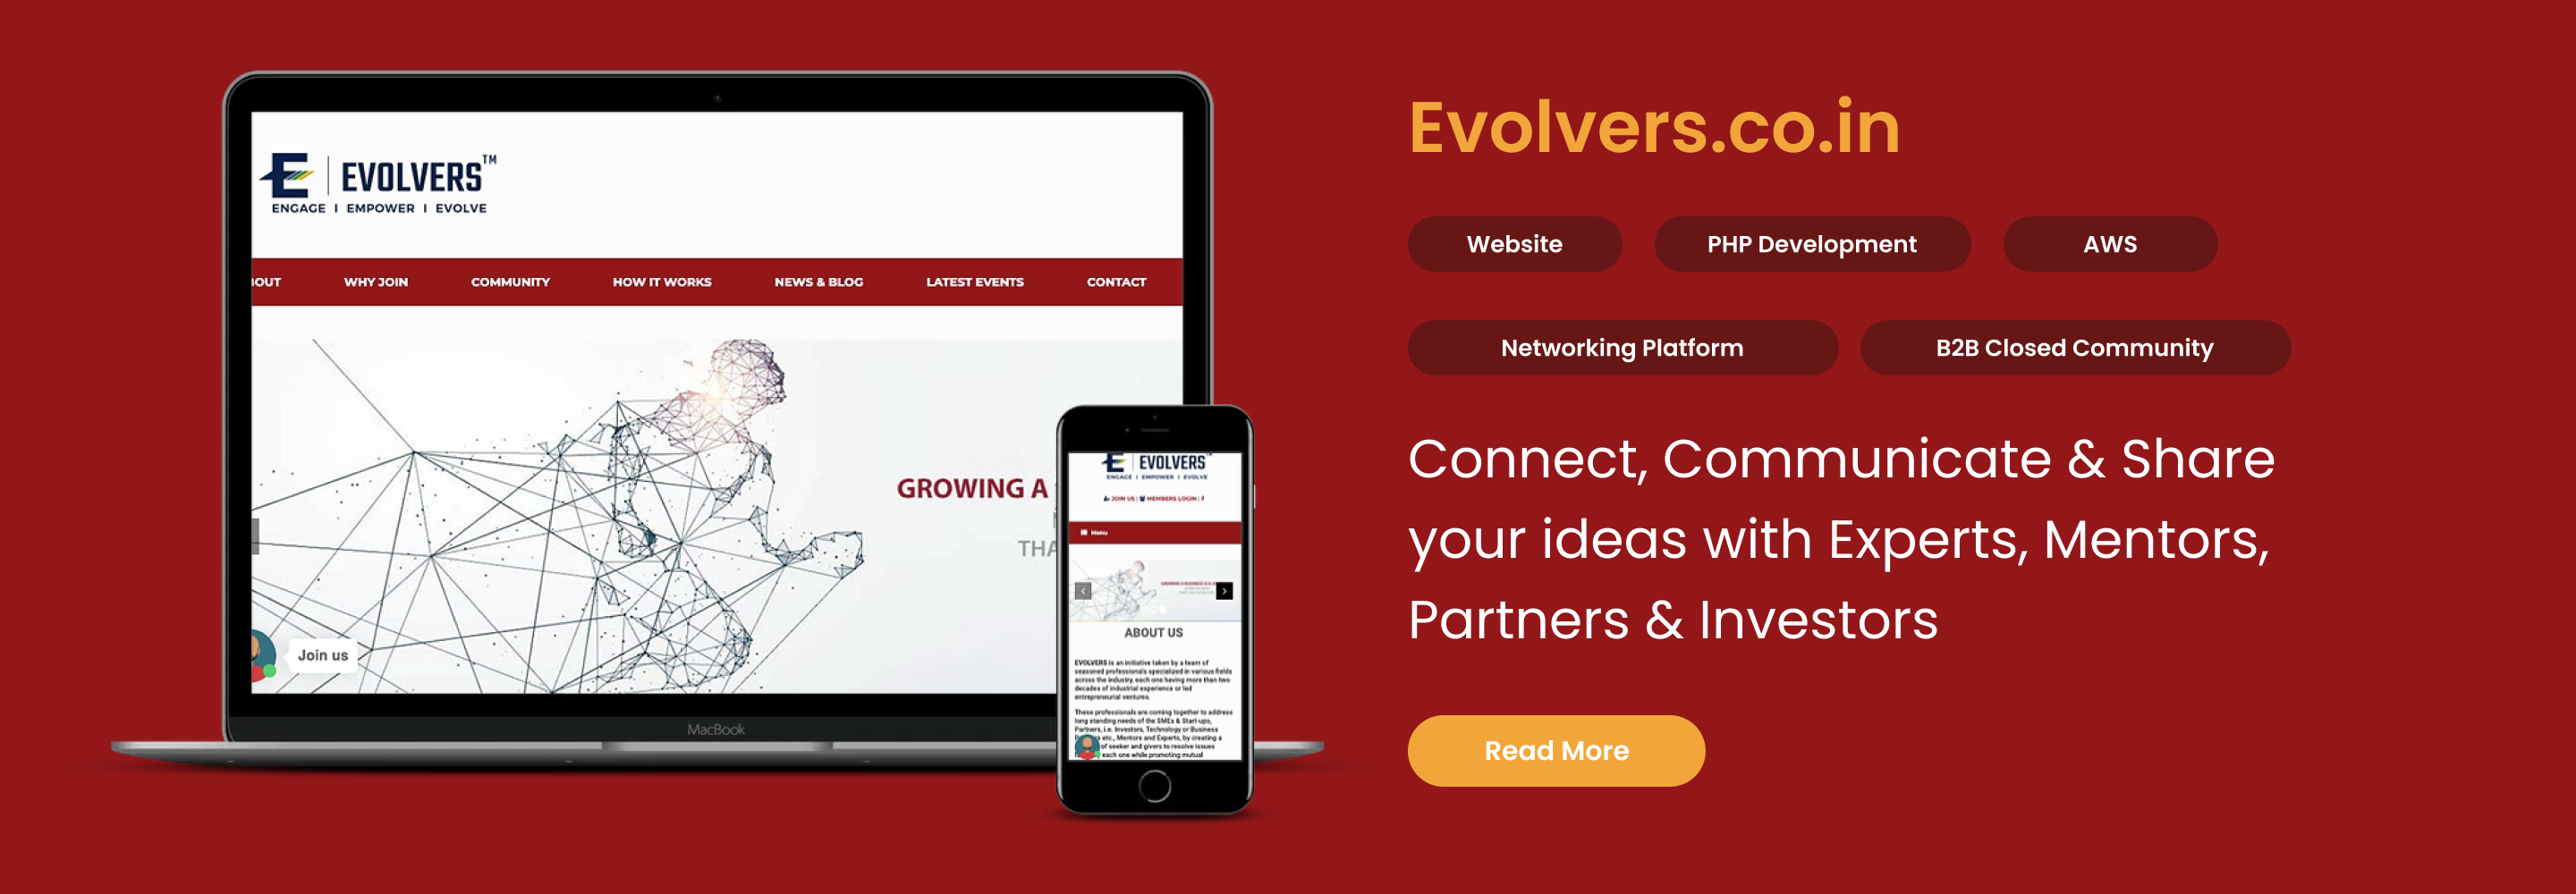 evolvers web development